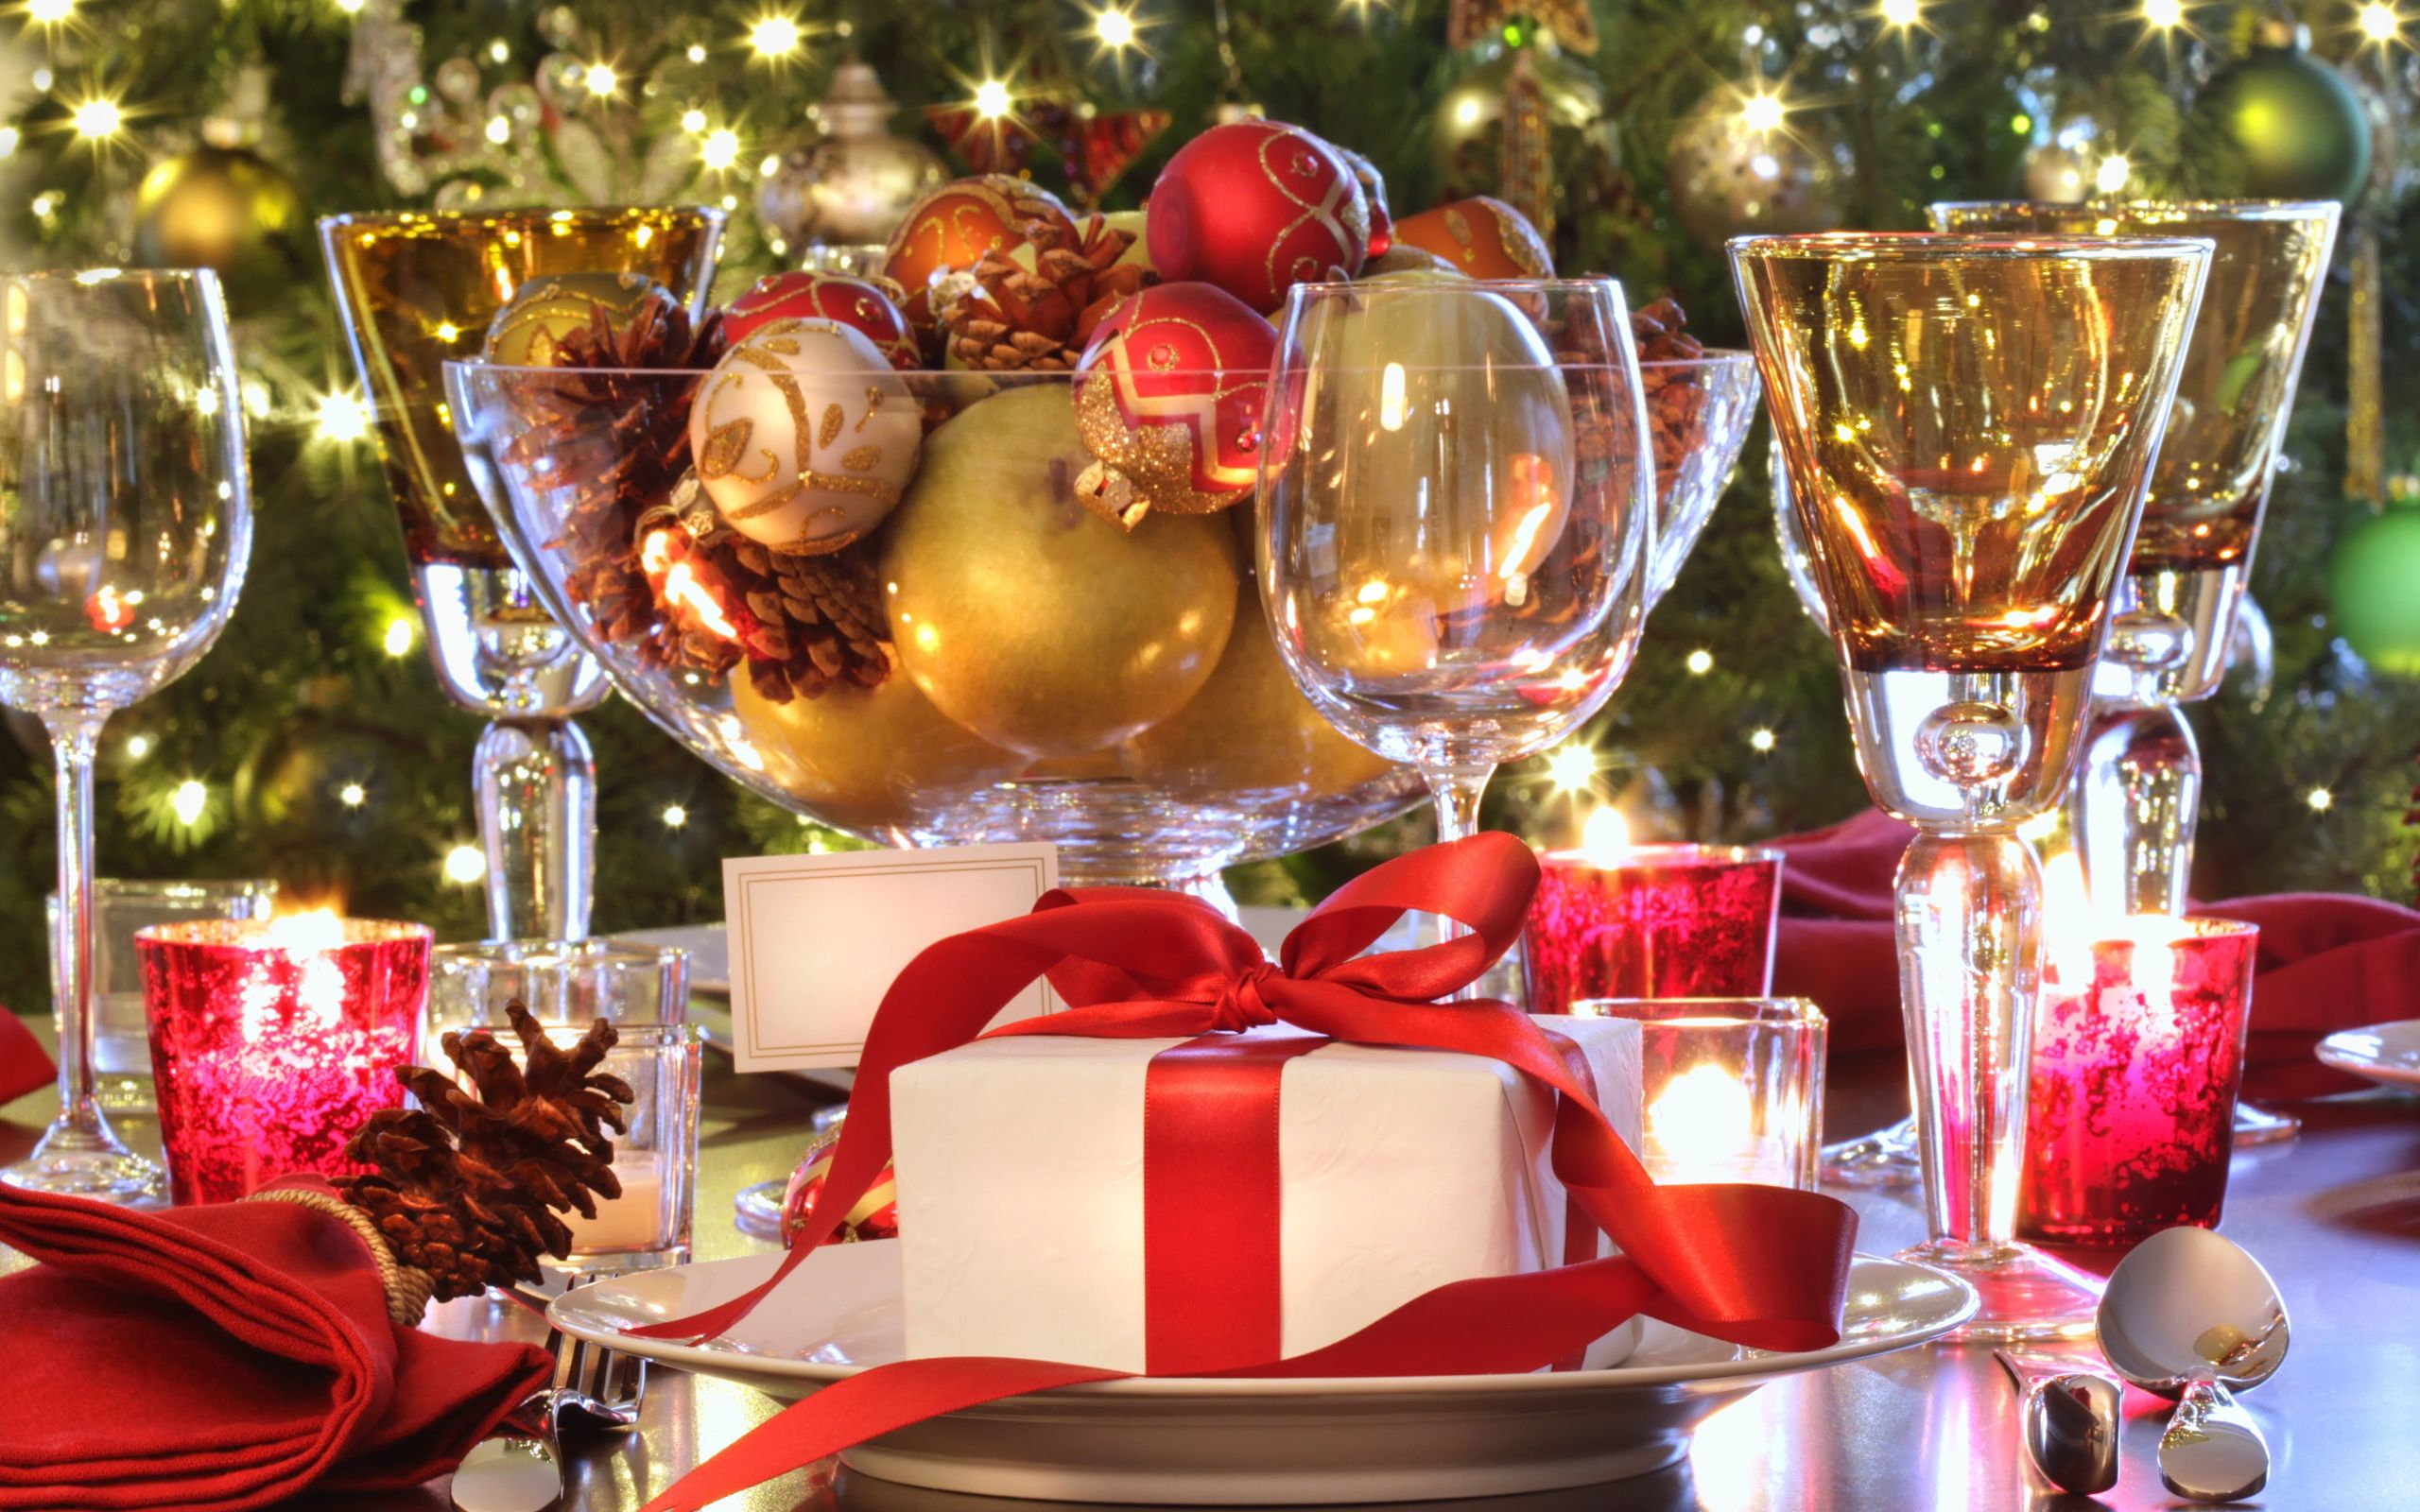 Beautiful Christmas Gifts - Wallpaper, High Definition, High Quality ...